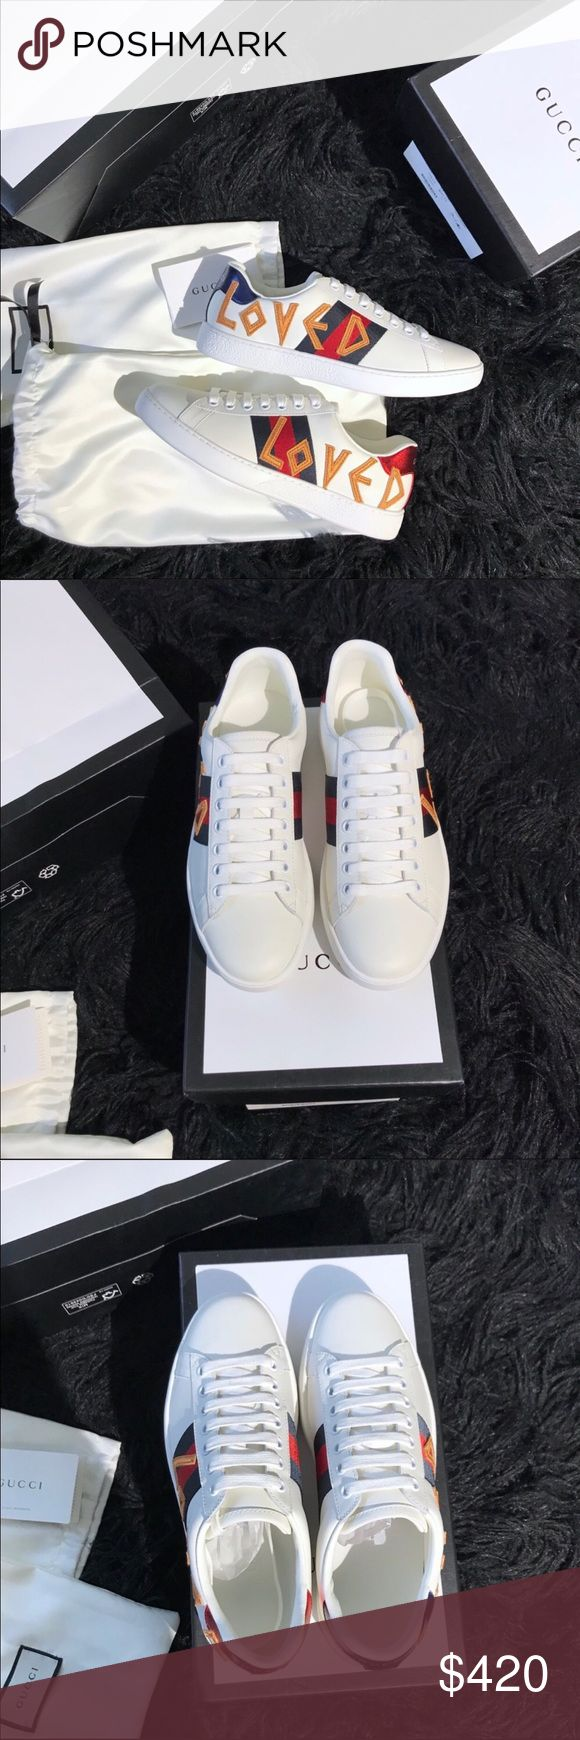 Gucci If Interested Text My Number 708-792-0232TO purchase send size and picture. Also for negotiating price contact me 708-792-0232 Gucci Shoes Sneakers